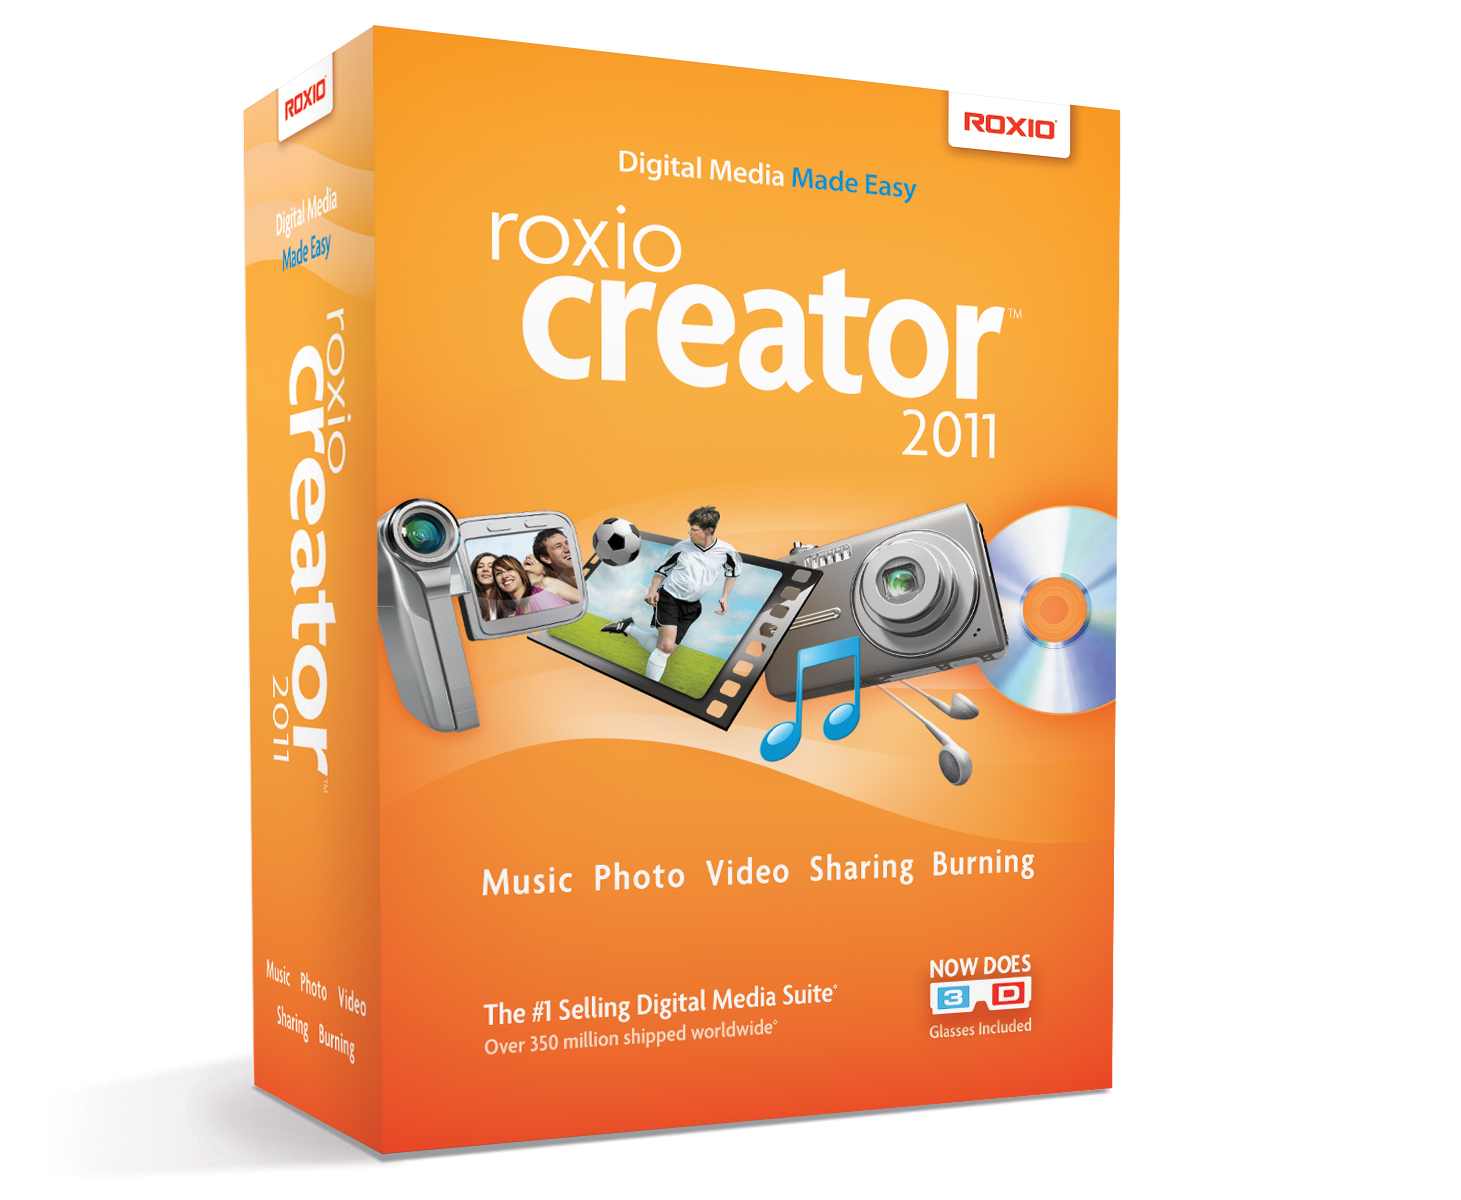 CD Burning DVD Burning and bonus software Creator NXT 7 Pro by Roxio